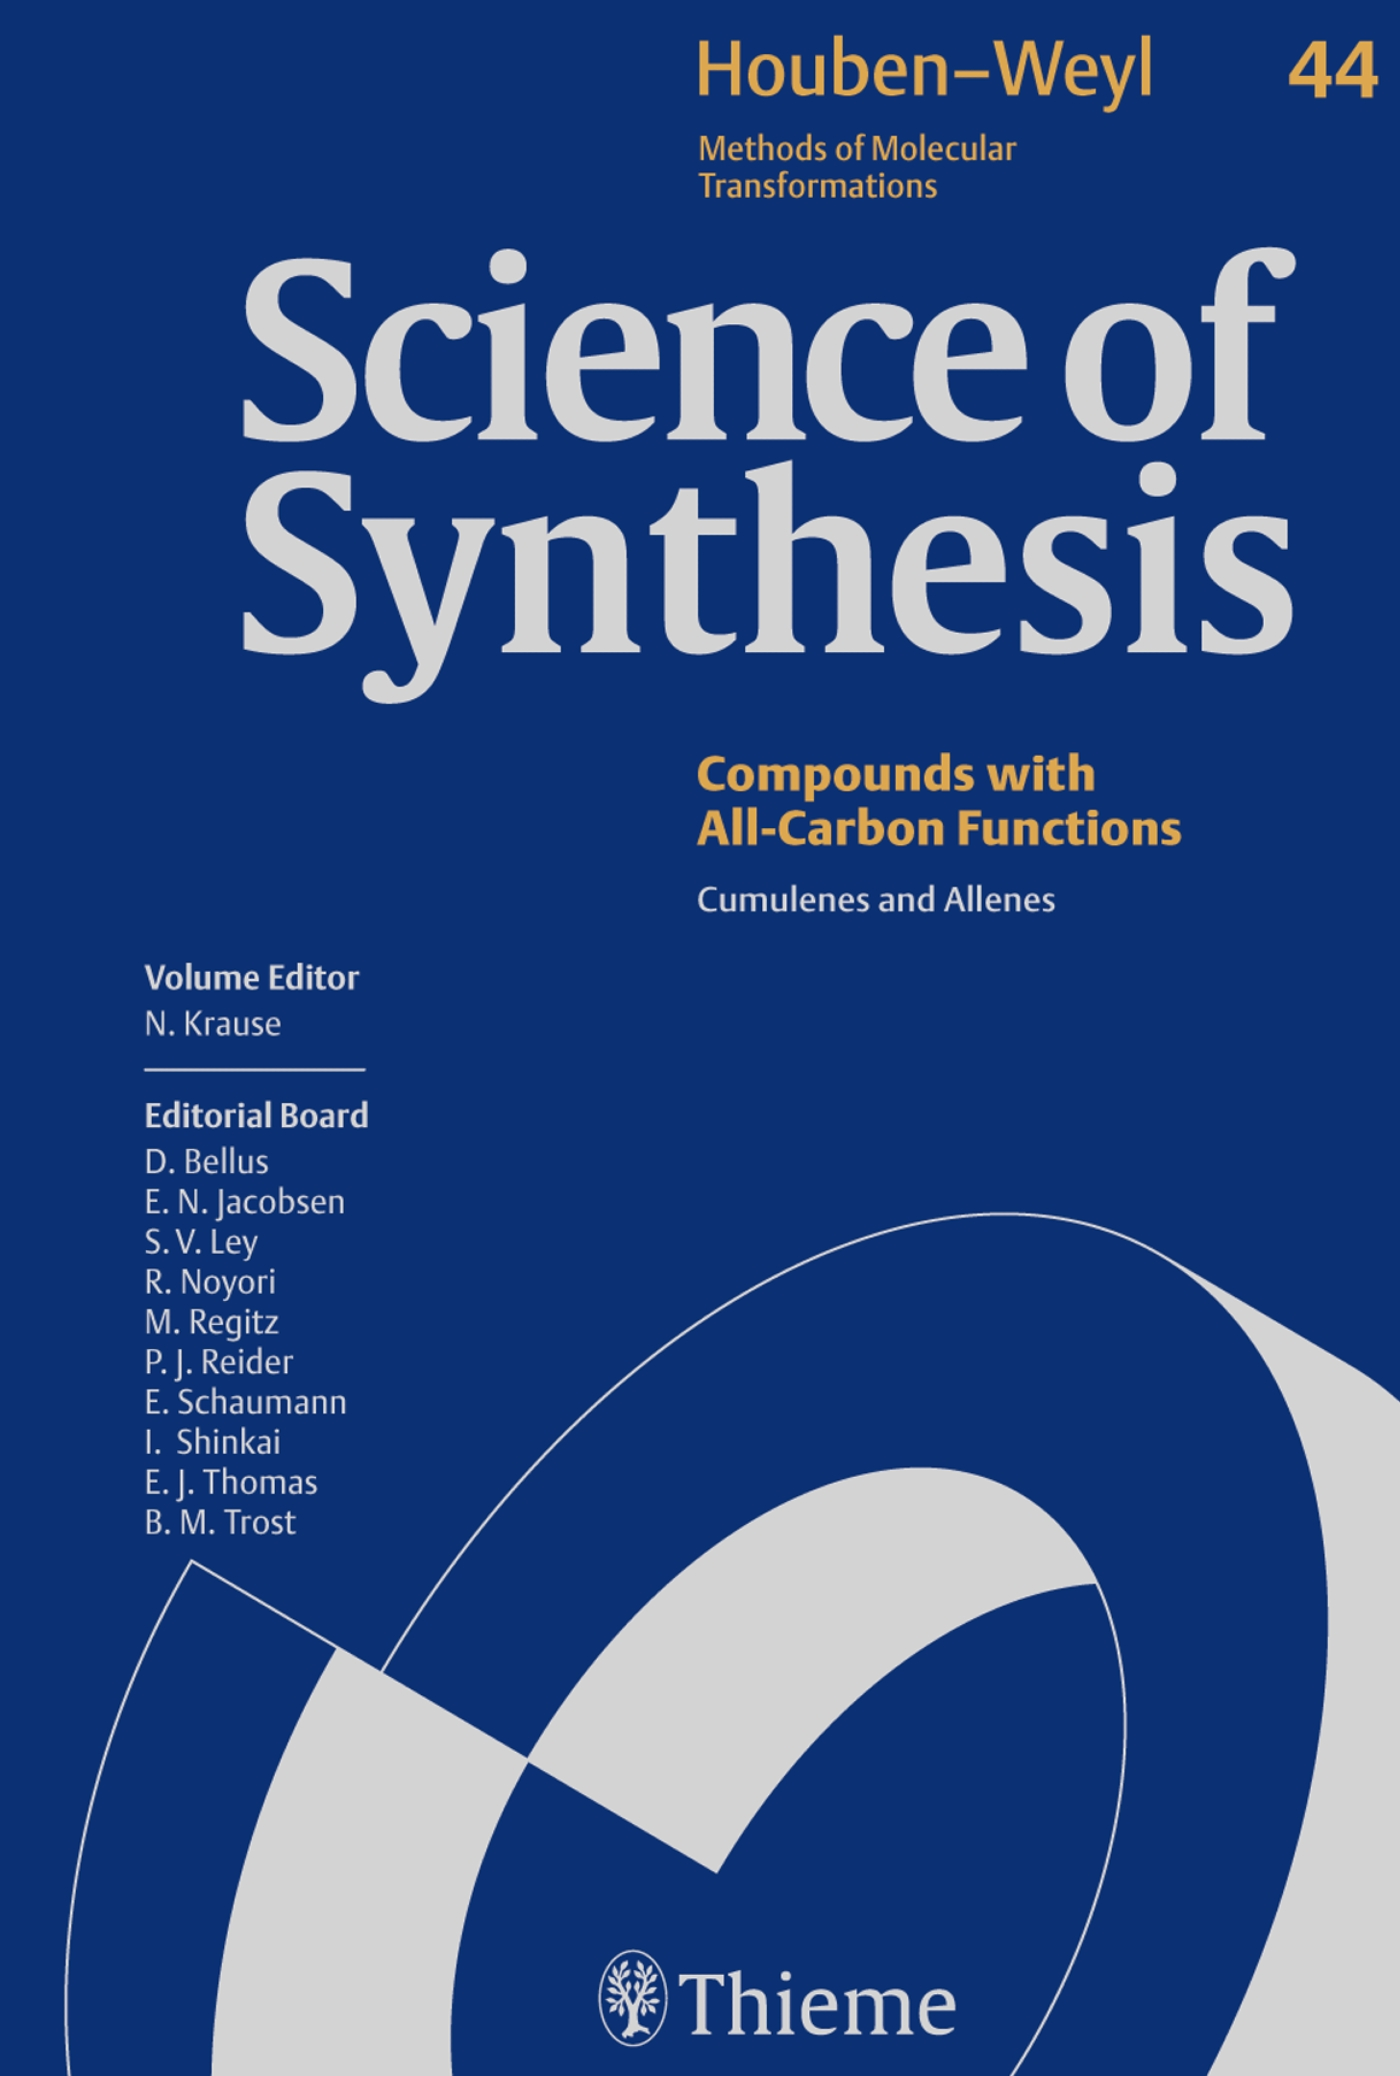 Science of Synthesis: Houben-Weyl Methods of Molecular Transformations  Vol. 44